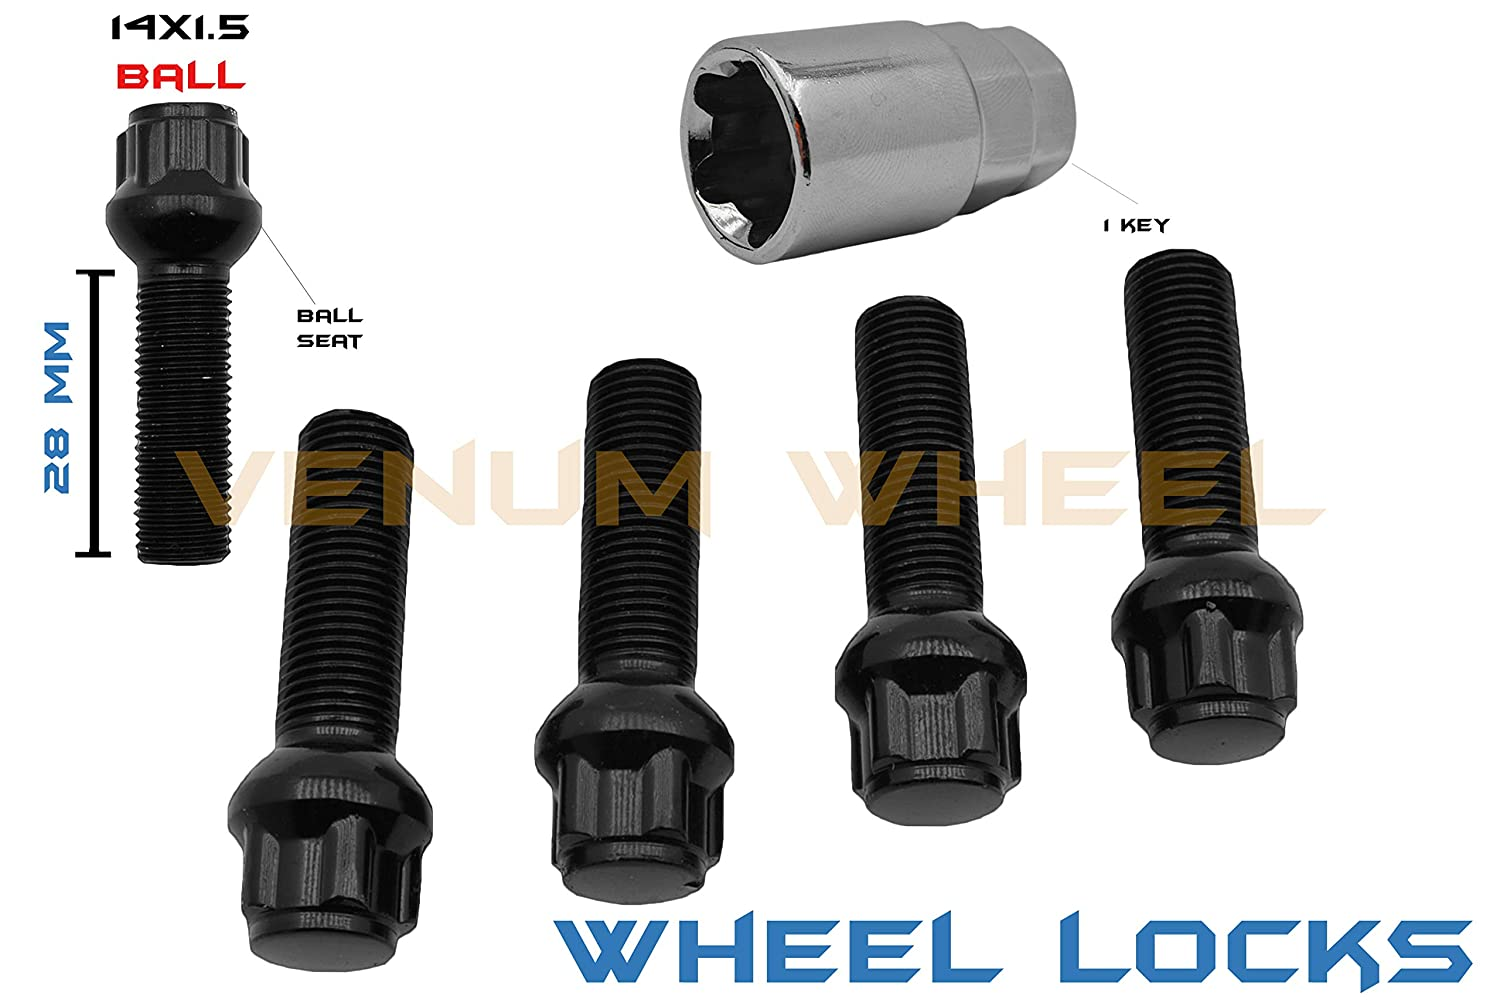 5 Pc Black Ball Seat Wheel Locks M14x1.5 Locking Lug Bolts Steel (28 MM) Stock Shank With Key Tool Included Compatible With Audi Mercedes Benz Volkswagen W/Factory Wheels Venum Wheel Accessories